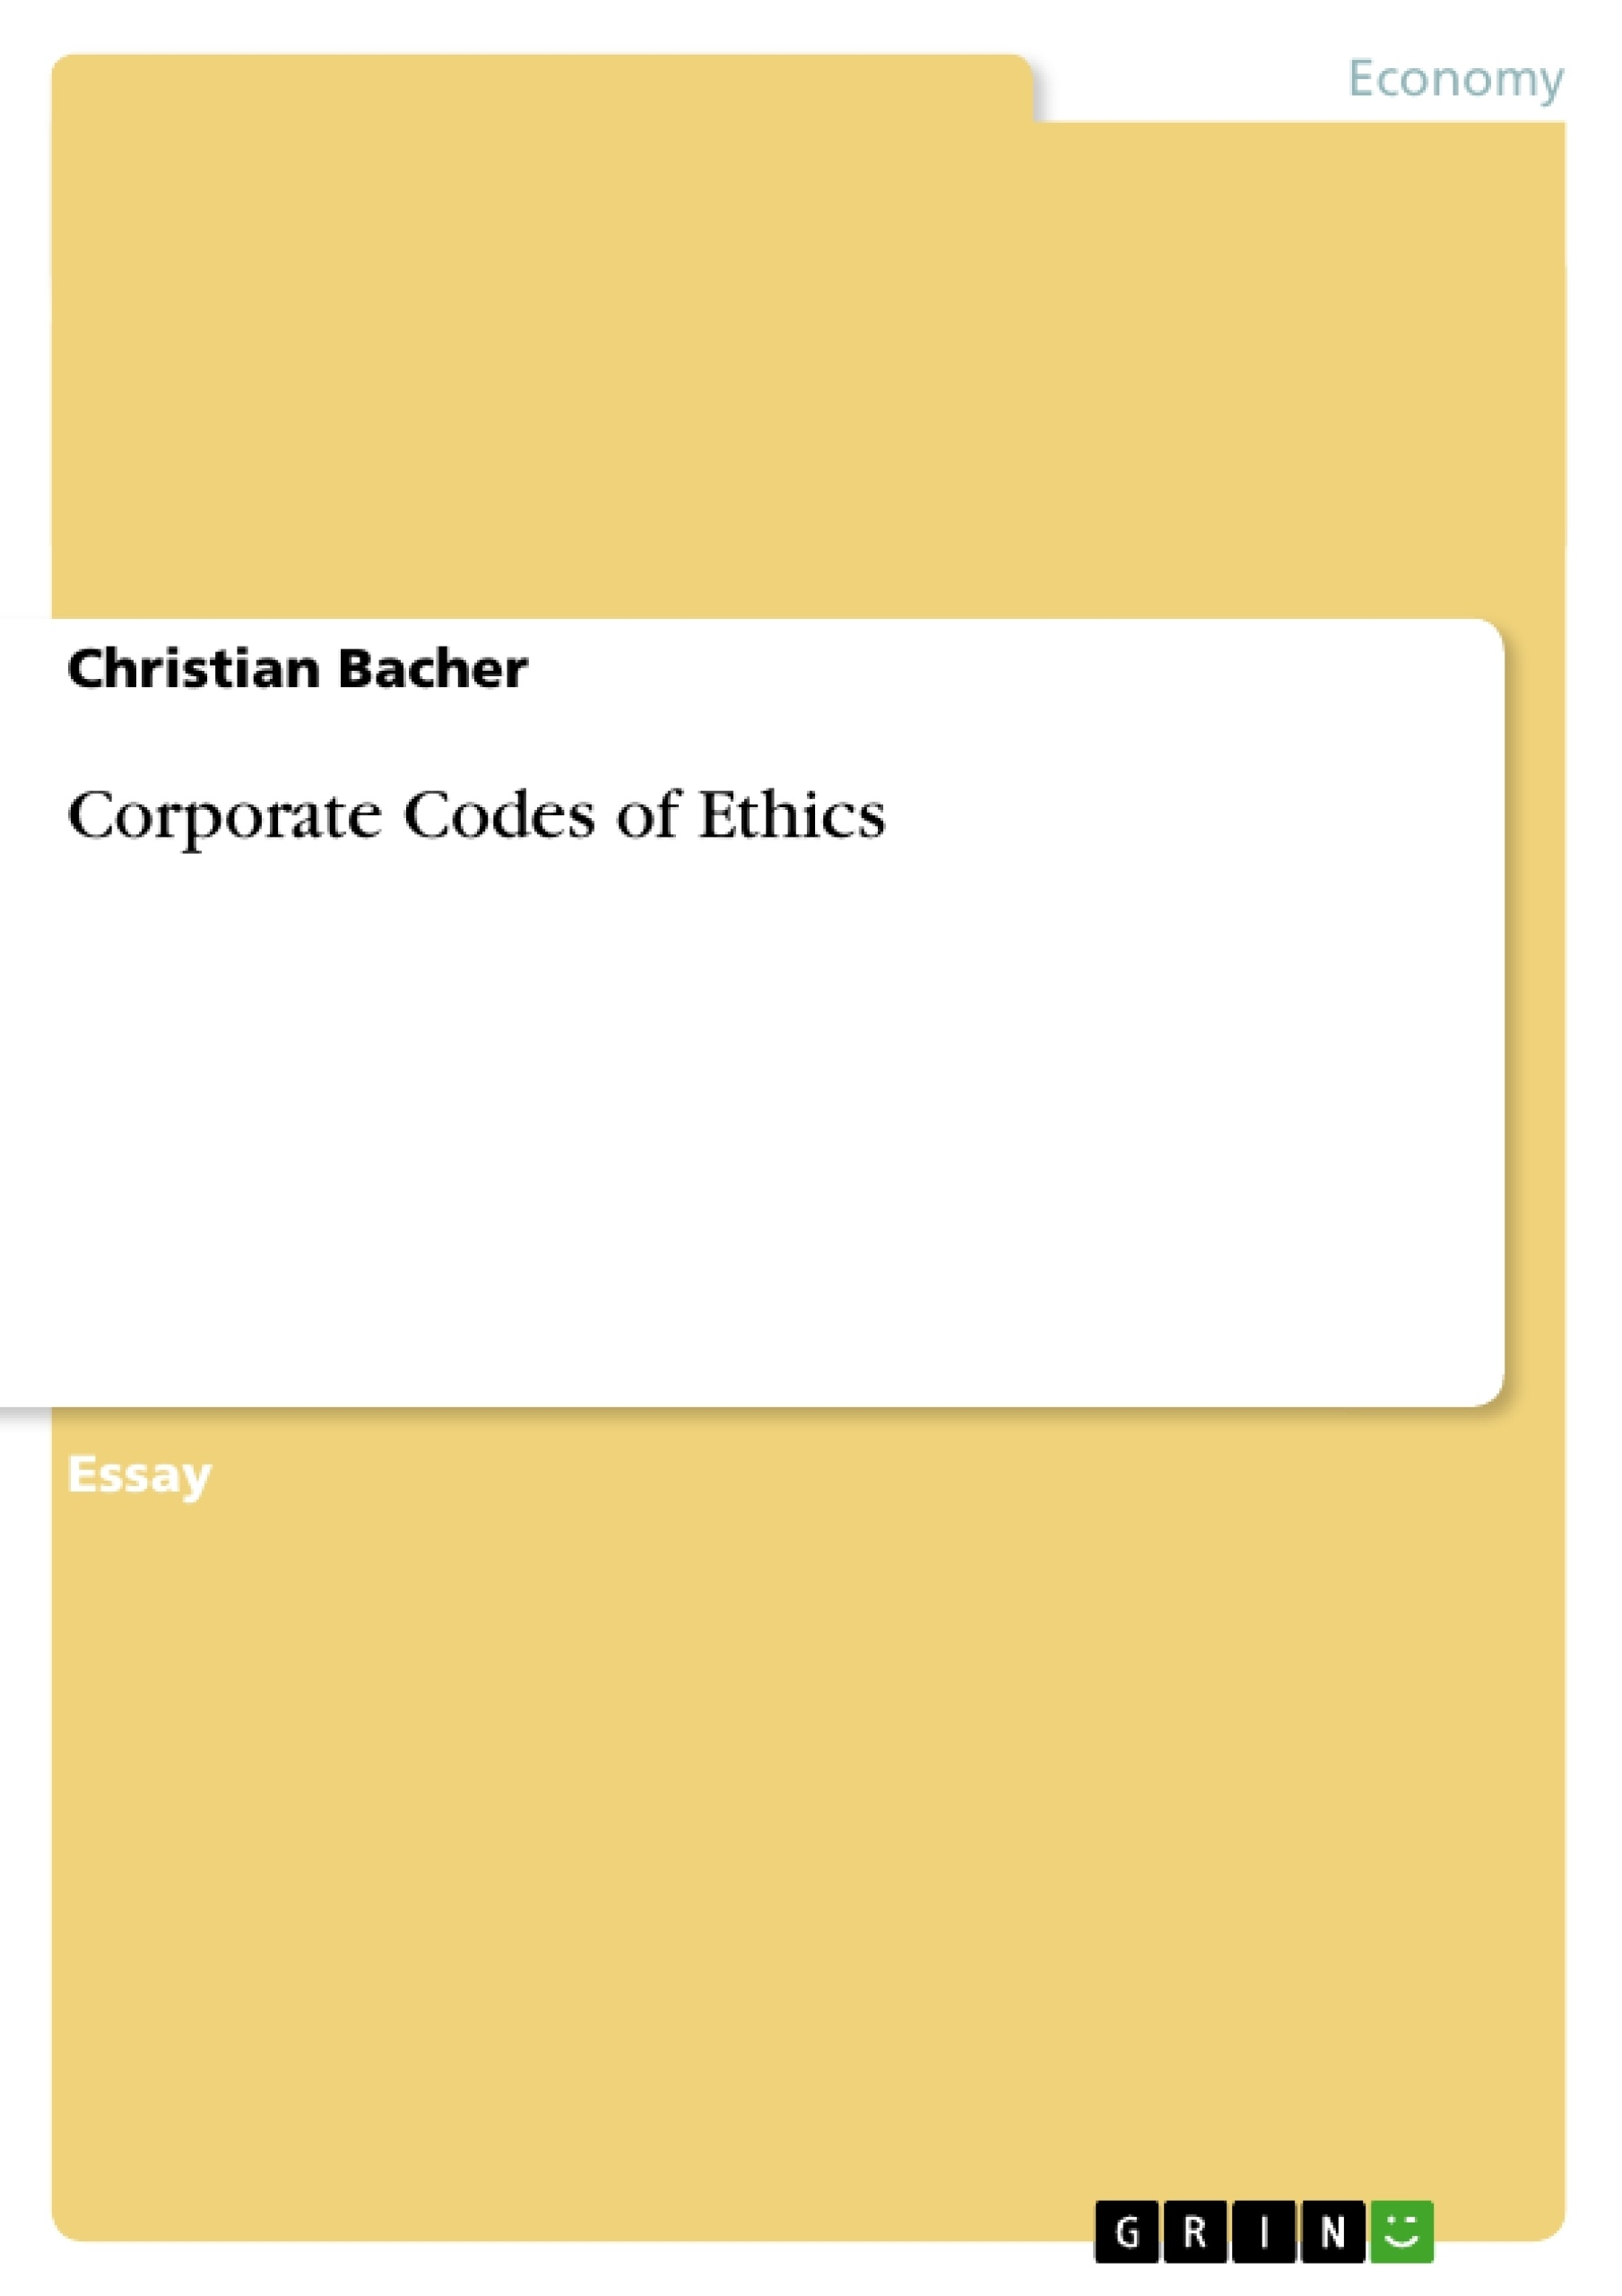 Corporate Codes Of Ethics  Publish Your Masters Thesis Bachelors  Upload Your Own Papers Earn Money And Win An Iphone X